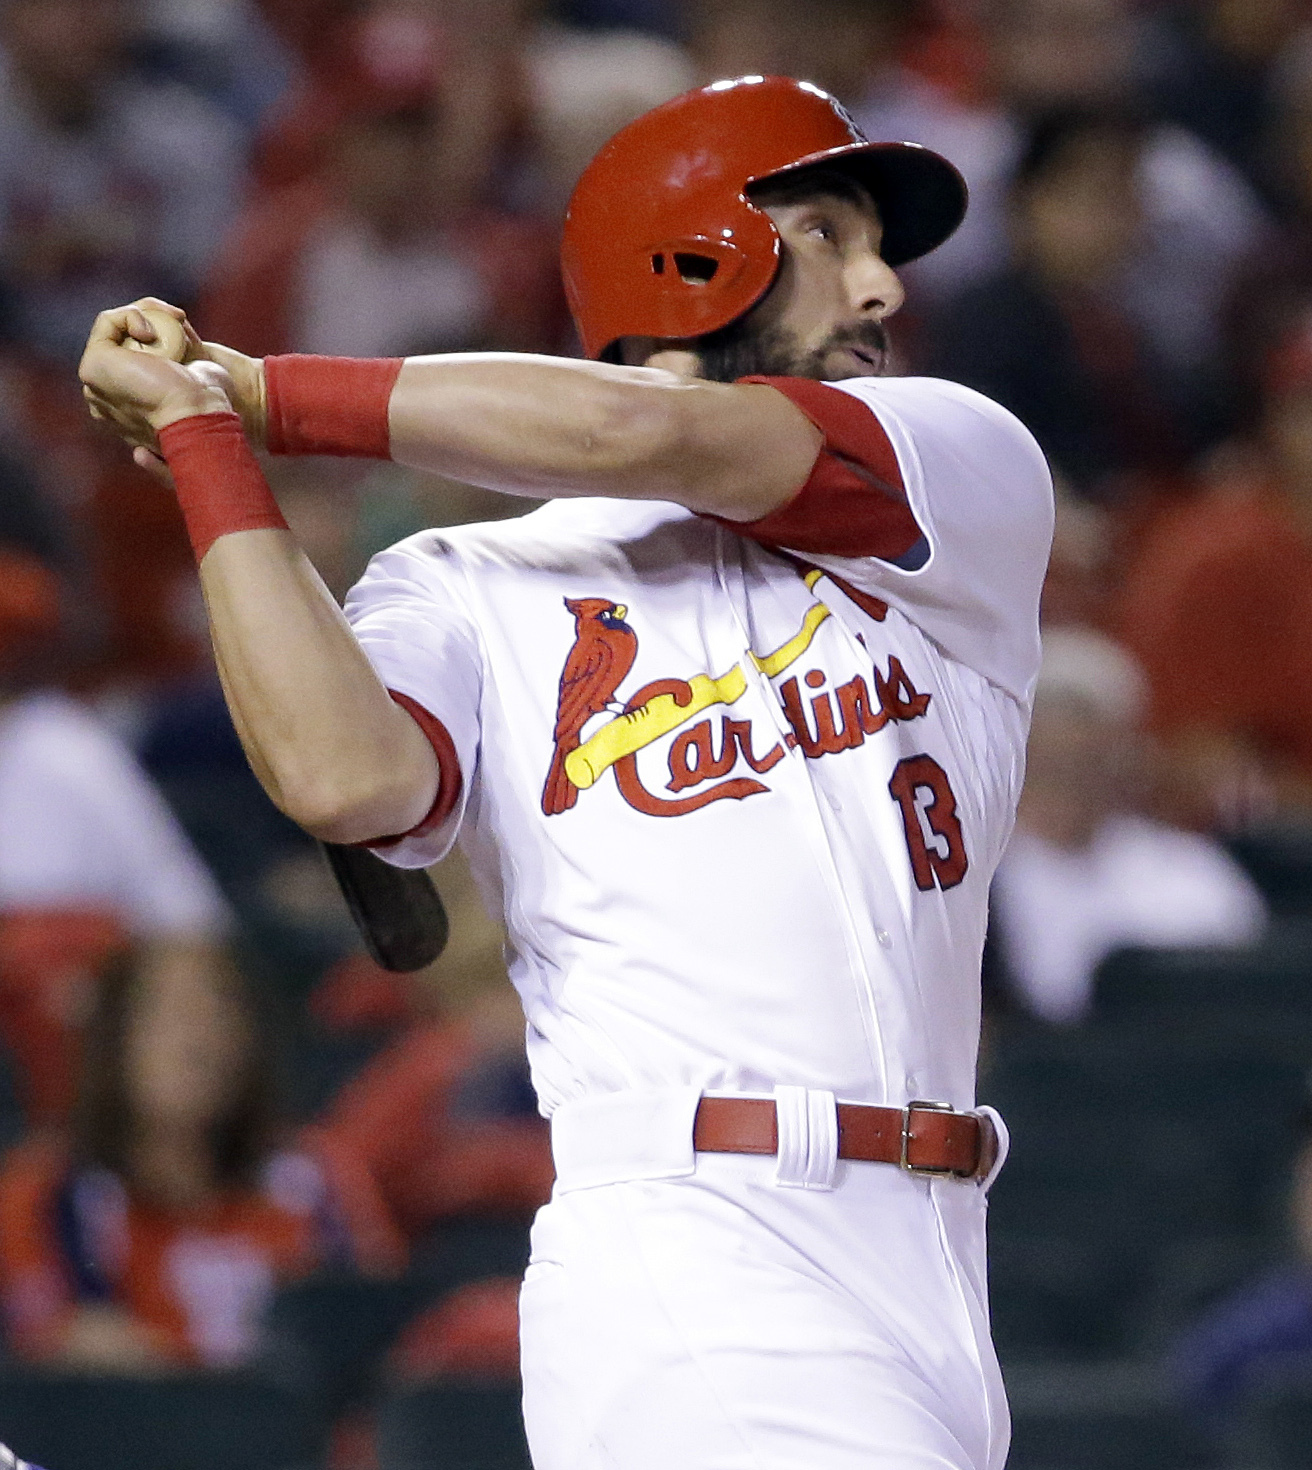 St. Louis Cardinals' Matt Carpenter watches his three-run home run during the eighth inning of a baseball game against the Colorado Rockies on Thursday, May 19, 2016, in St. Louis. (AP Photo/Jeff Roberson)